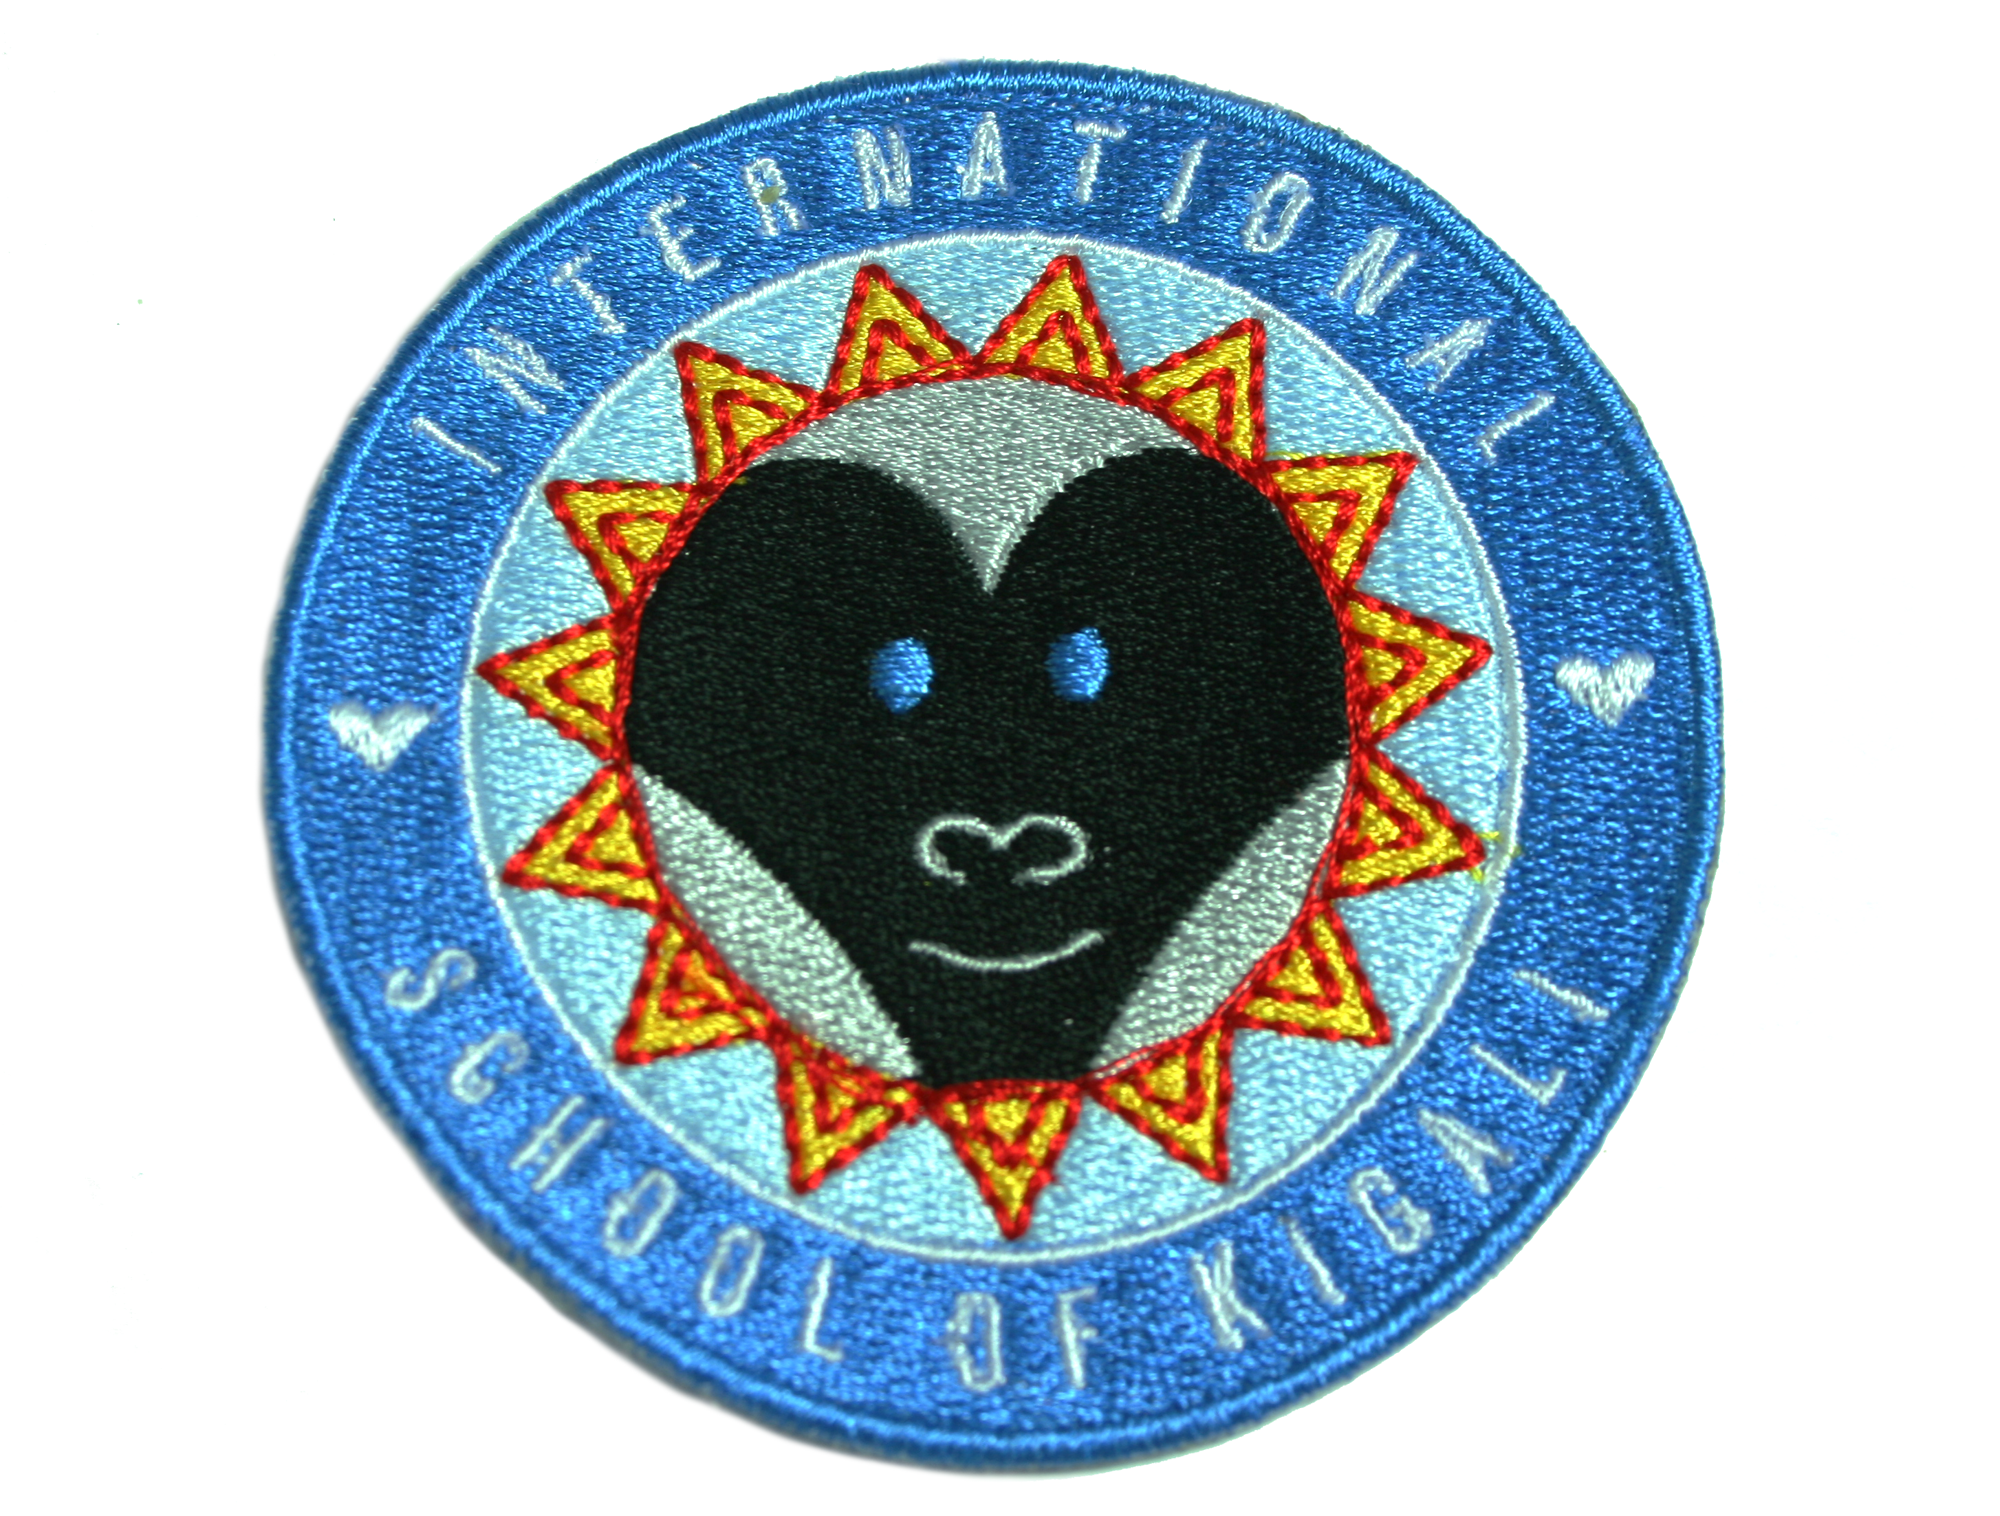 This patch was created for The International School of Kigali re-branding